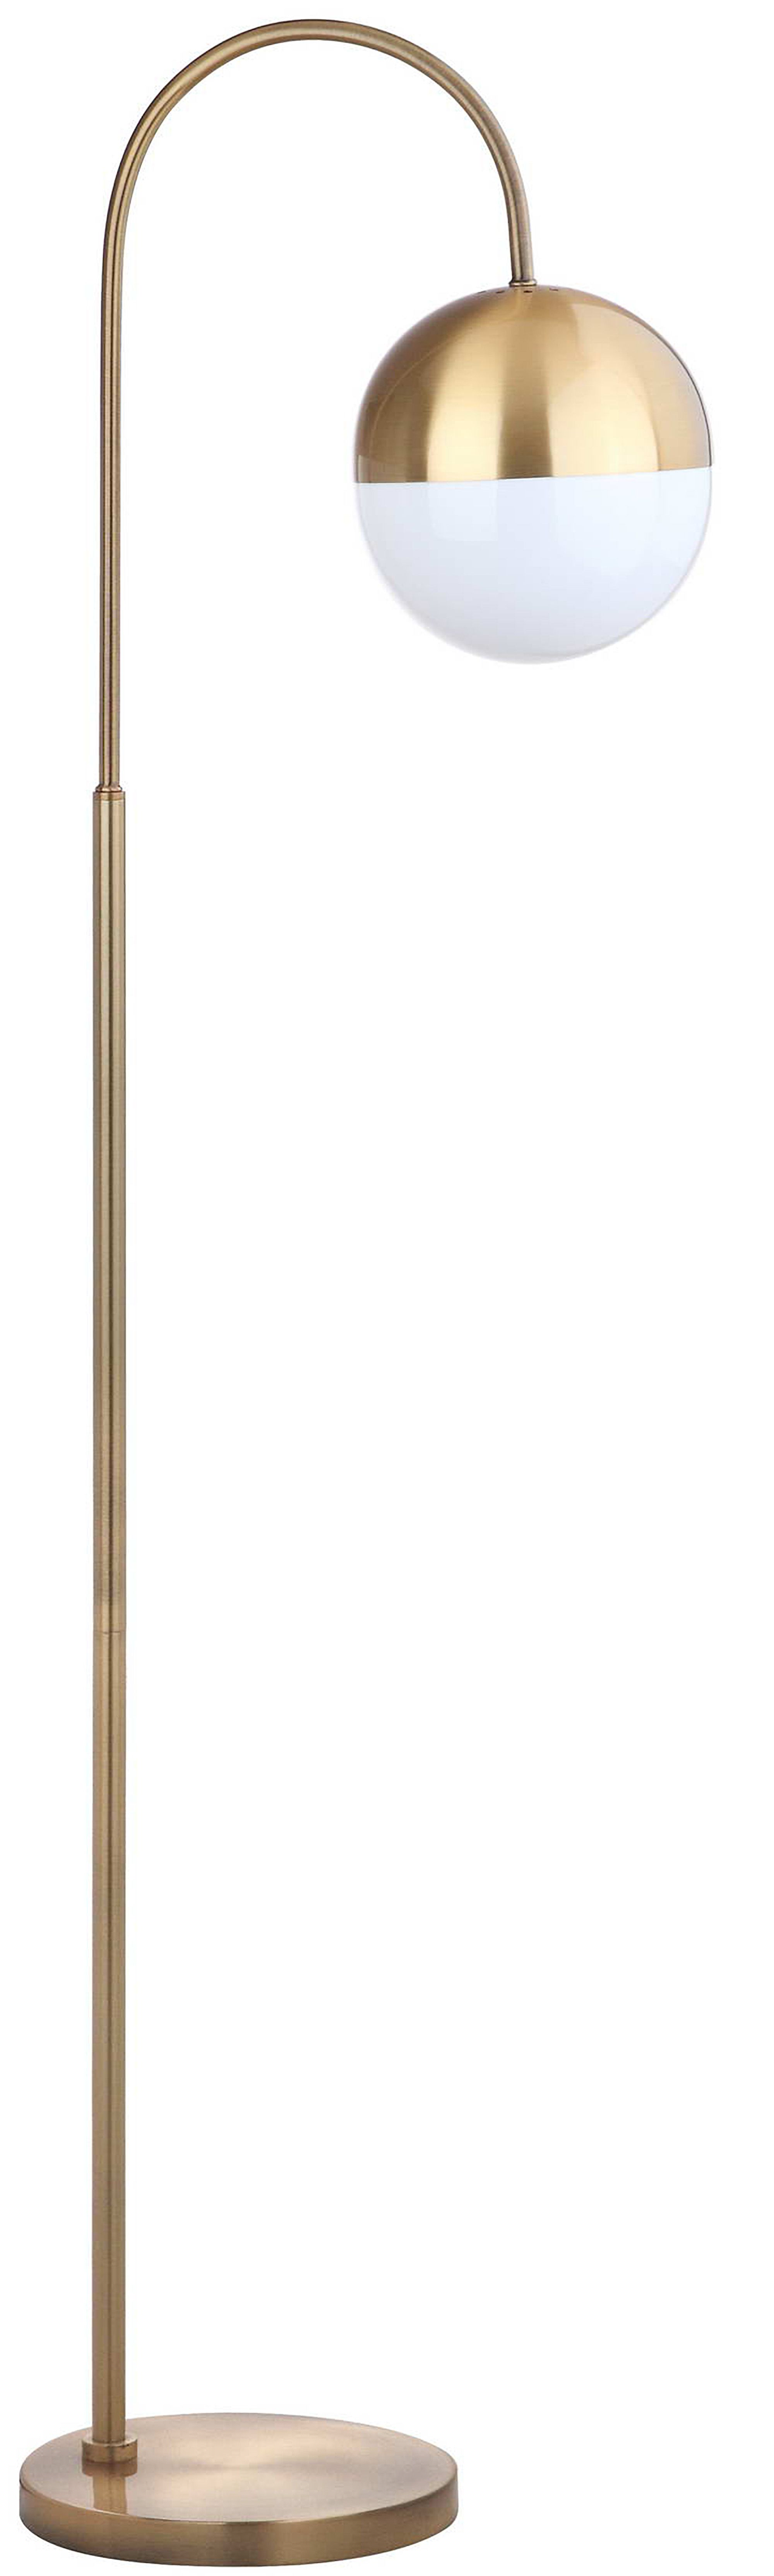 Home in 2020 Arched floor lamp, Curved floor lamp, Floor